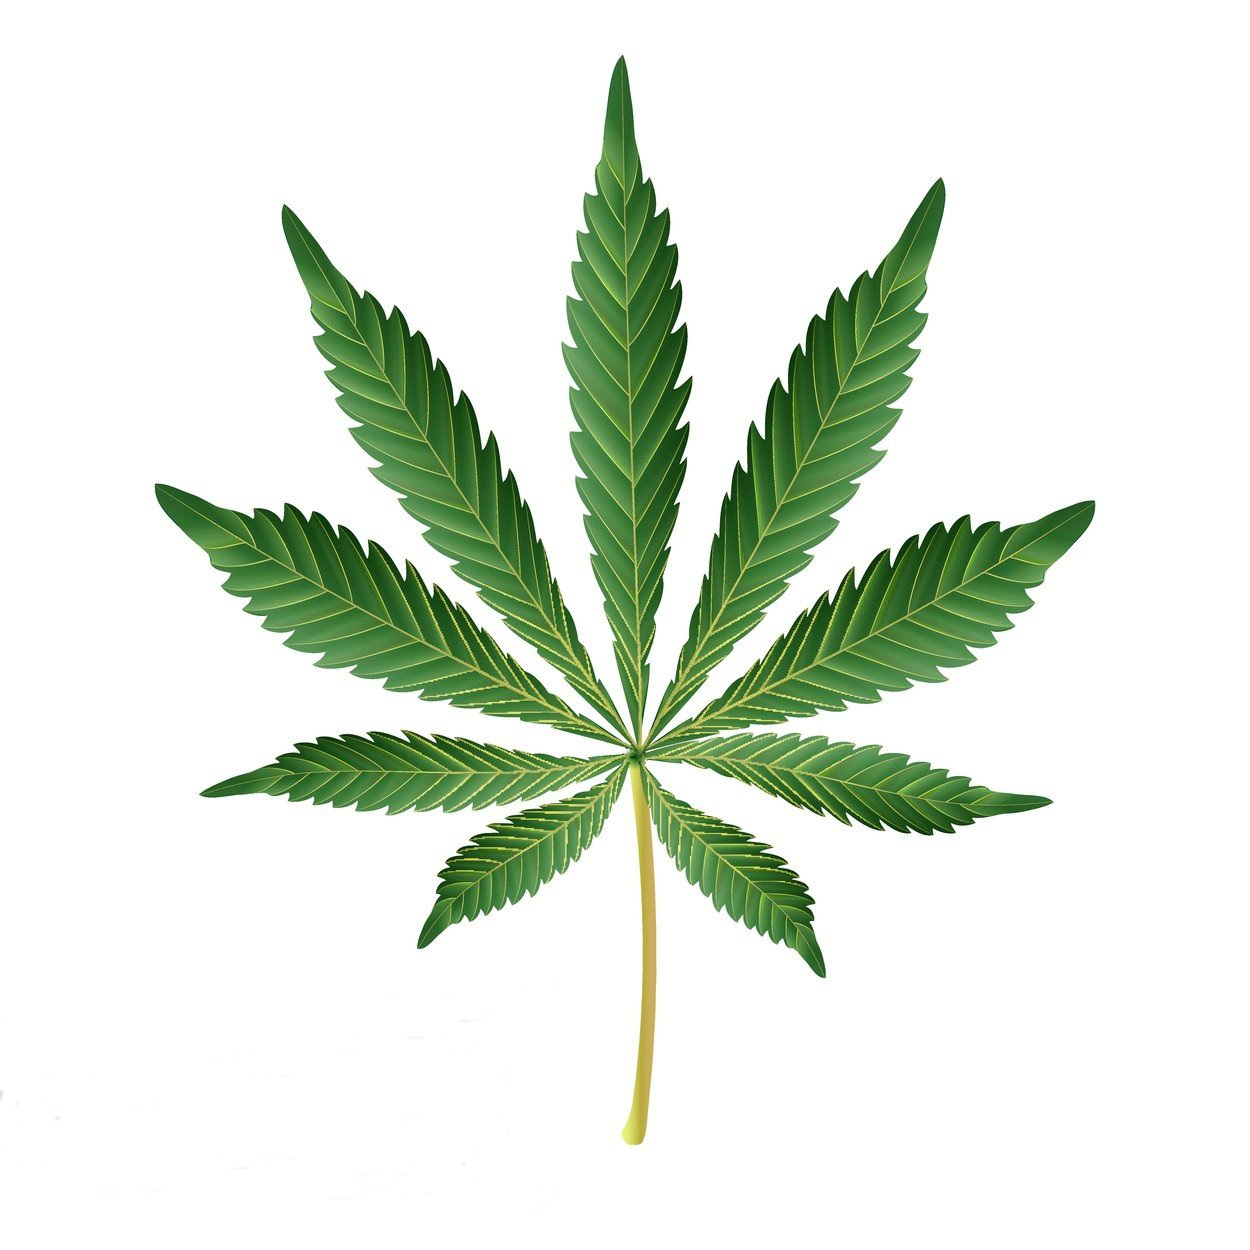 Cannabis Icon Vector. Medical Green Plant Illustration Isolated On White Background. Graphic Design Element For Printables, Web, Prints, Image: 340494944, License: Royalty-free, Restrictions: , Model Release: no, Credit line: Profimedia, Alamy